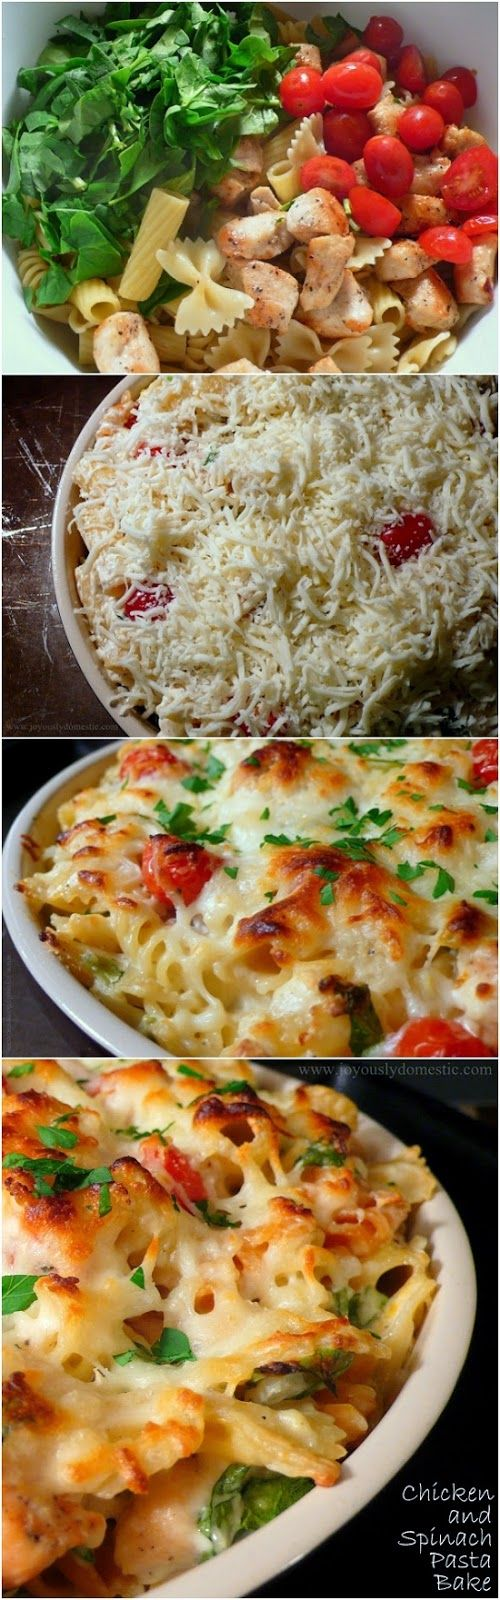 Chicken & Spinach Pasta Bake [ MyGourmetCafe.com ] #dinner #recipes #gourmet